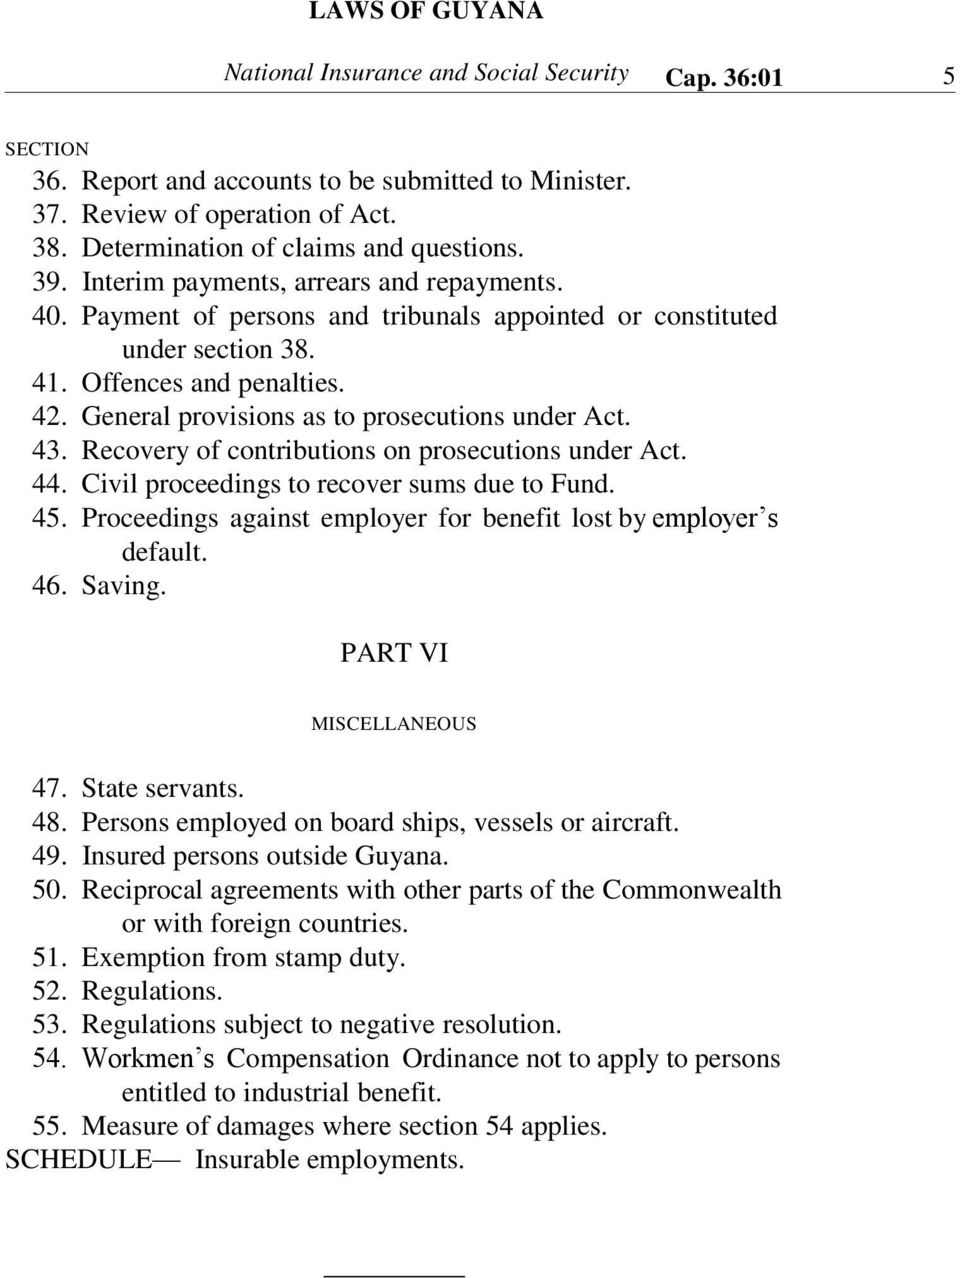 General provisions as to prosecutions under Act. 43. Recovery of contributions on prosecutions under Act. 44. Civil proceedings to recover sums due to Fund. 45.